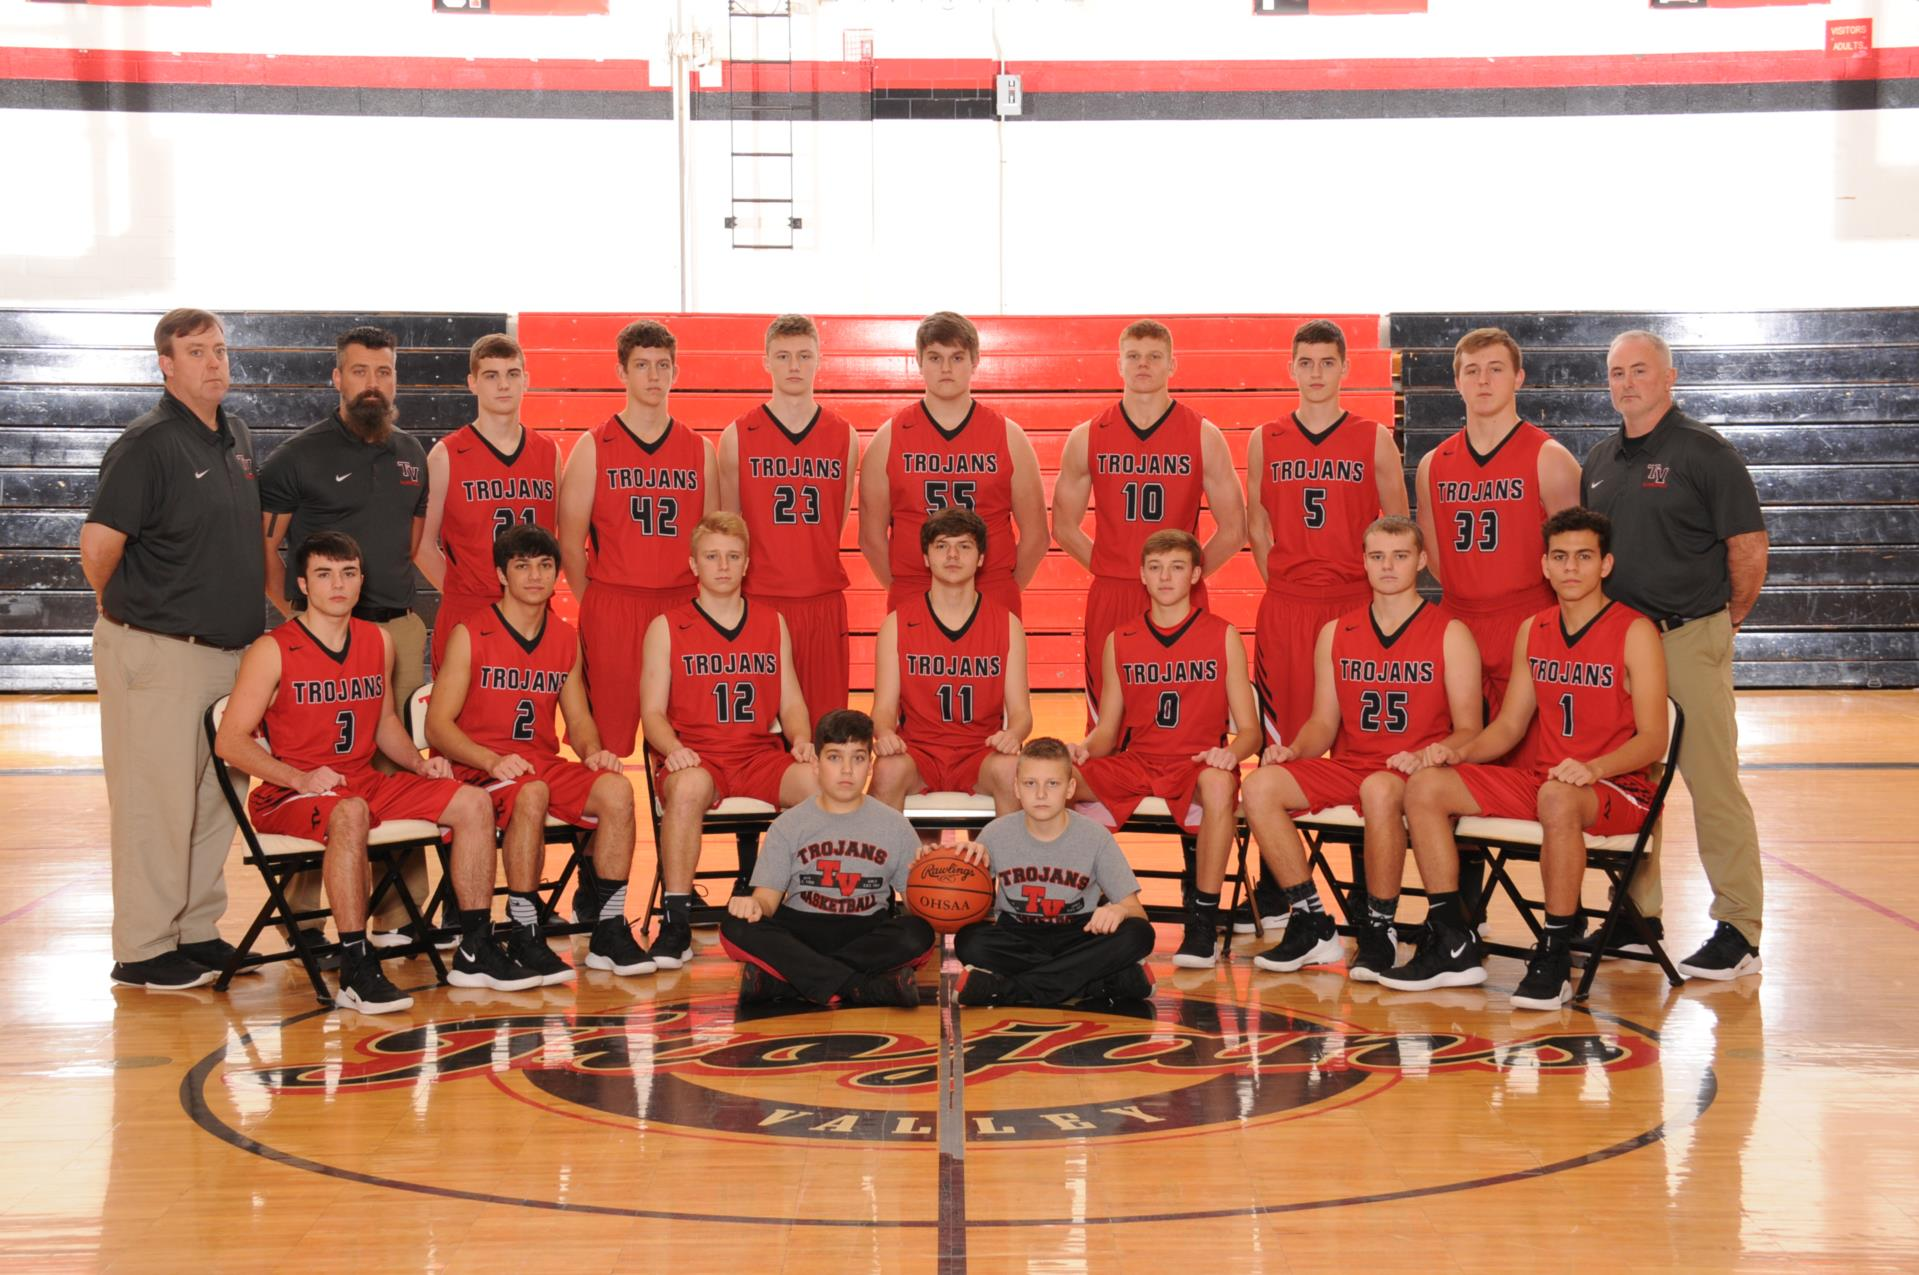 2018-2019 Boys' Basketball Team